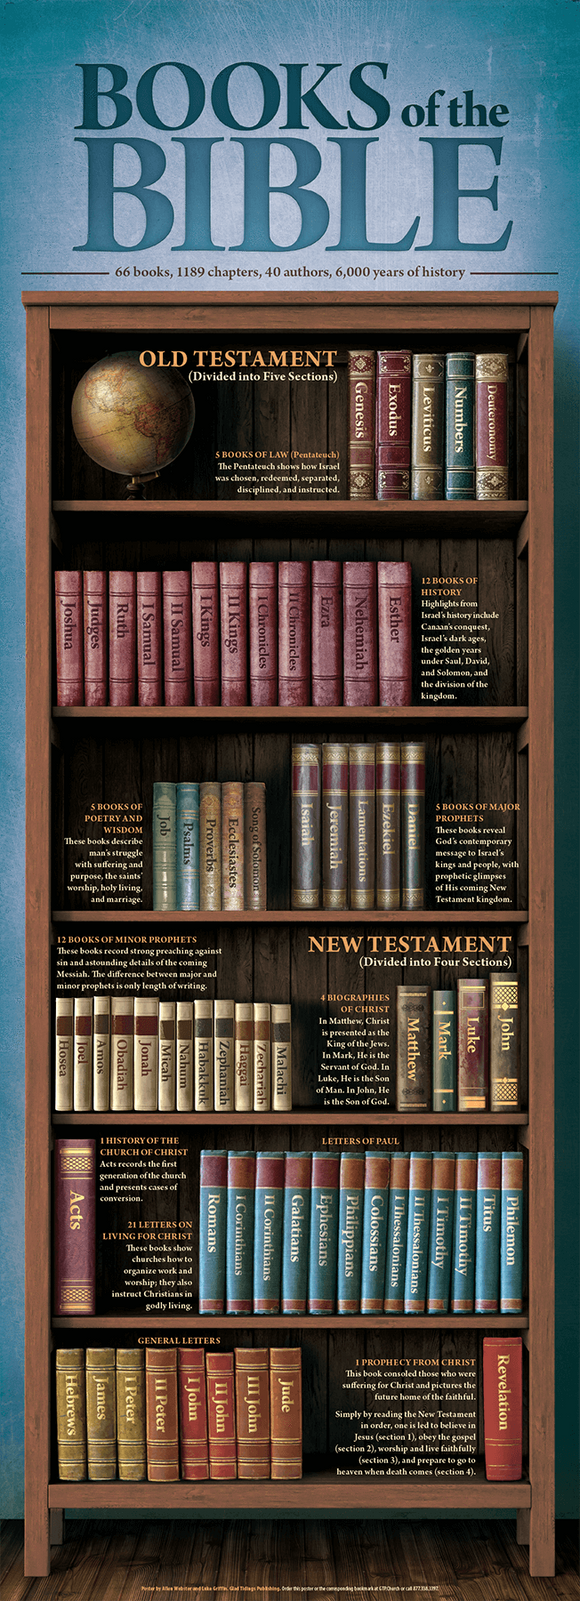 Books of the Bible - Glad Tidings Publishing